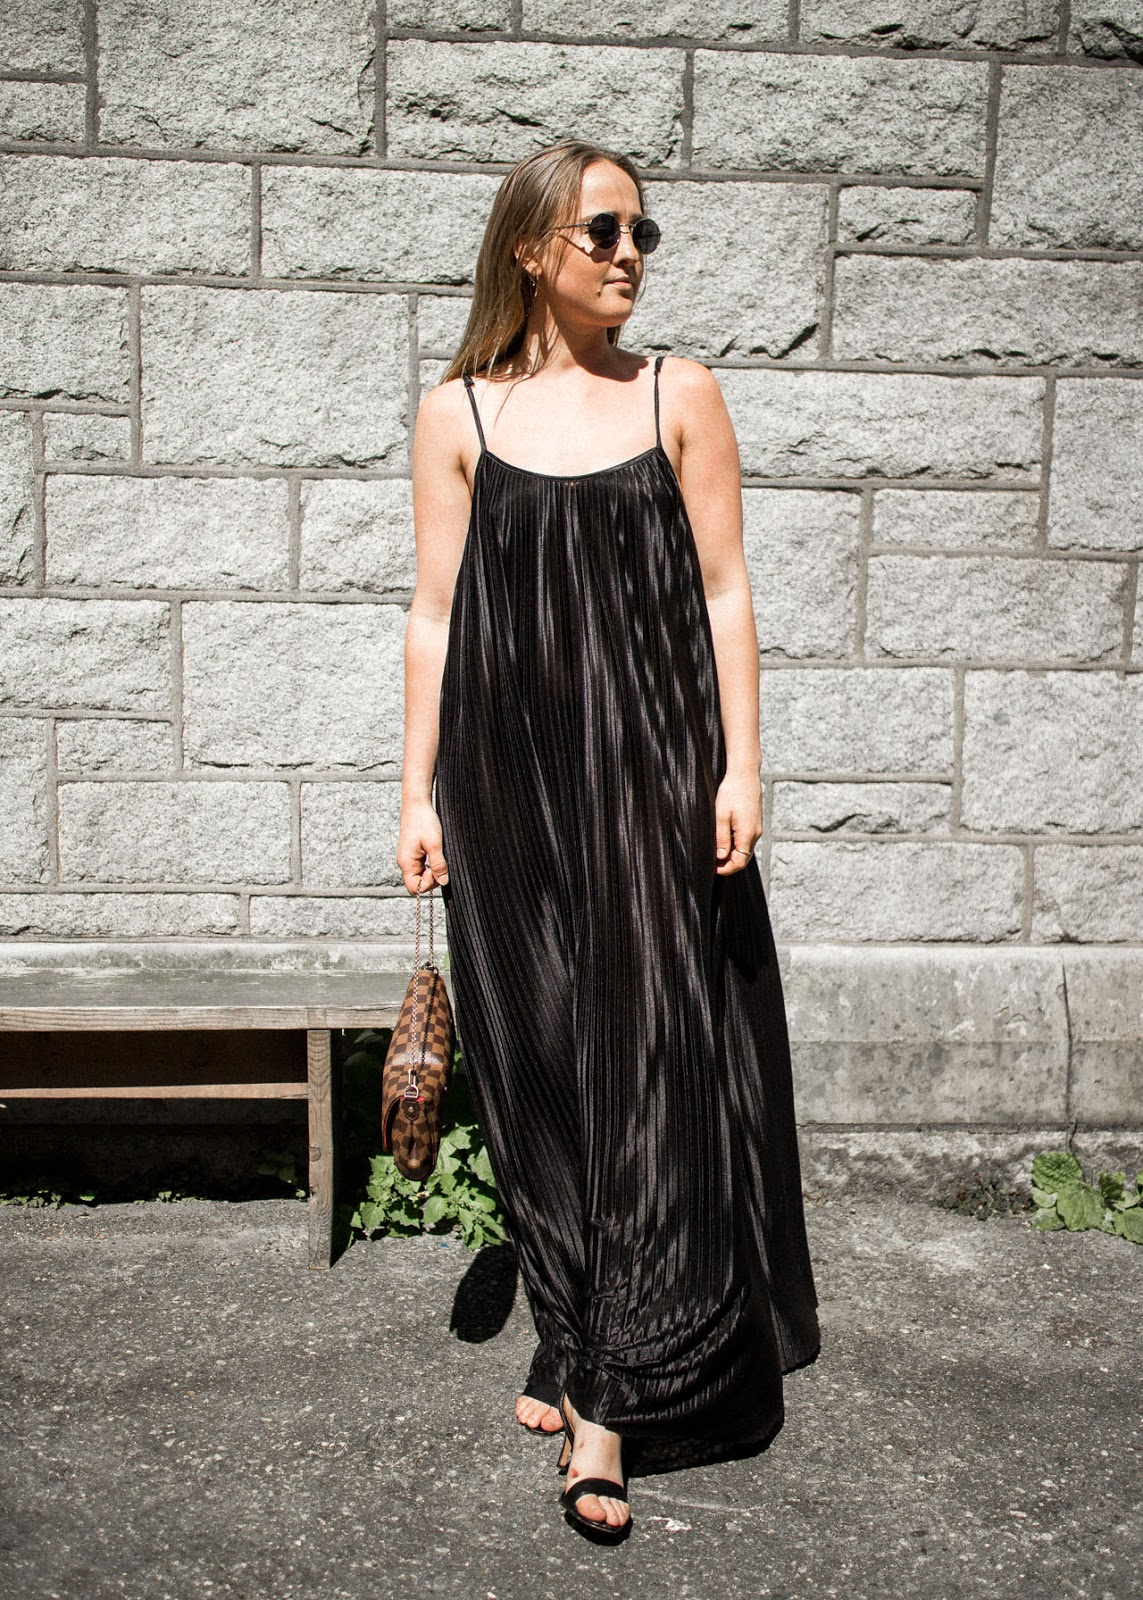 Wedding attire - Pleated maxi dress - In My Dreams - Vancouver Fashion Blogger